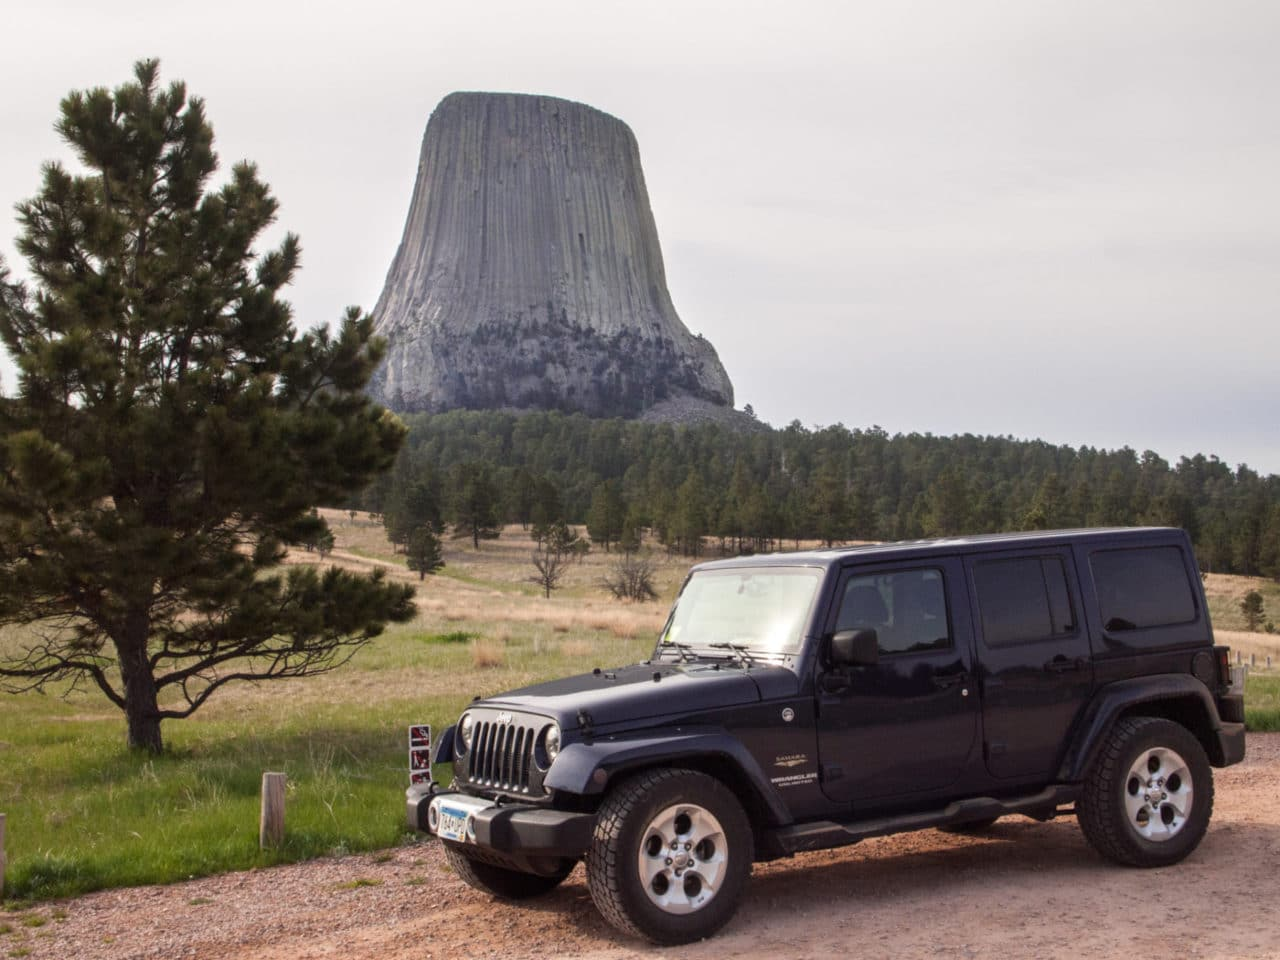 Under the Devils Tower